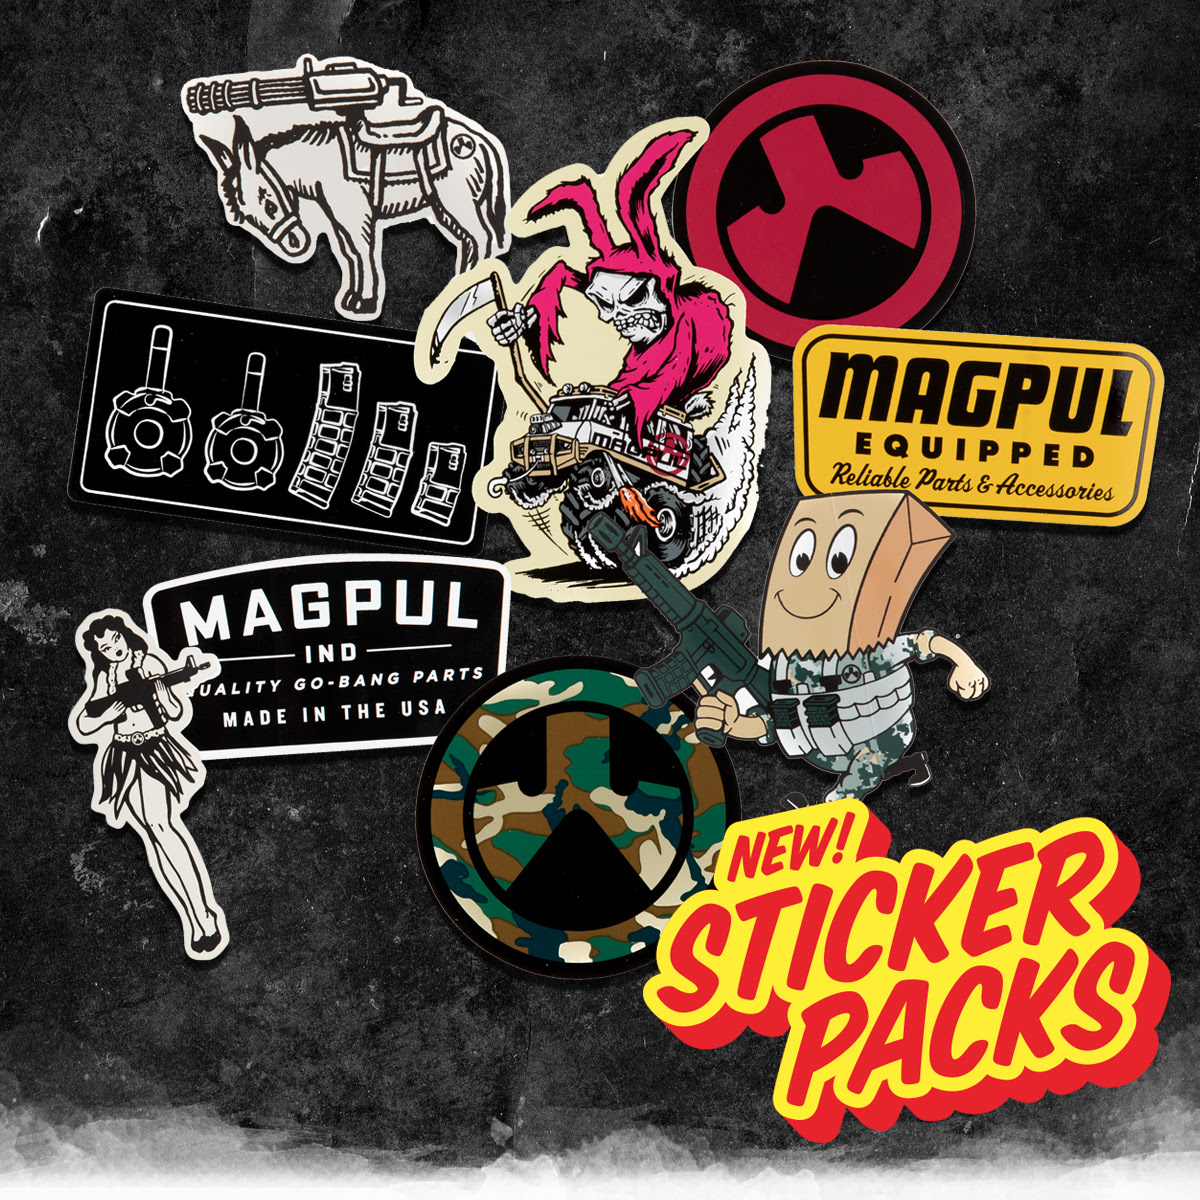 MAGPUL INDUSTRIES RELEASES NEW MAGPUL STICKER PACKS